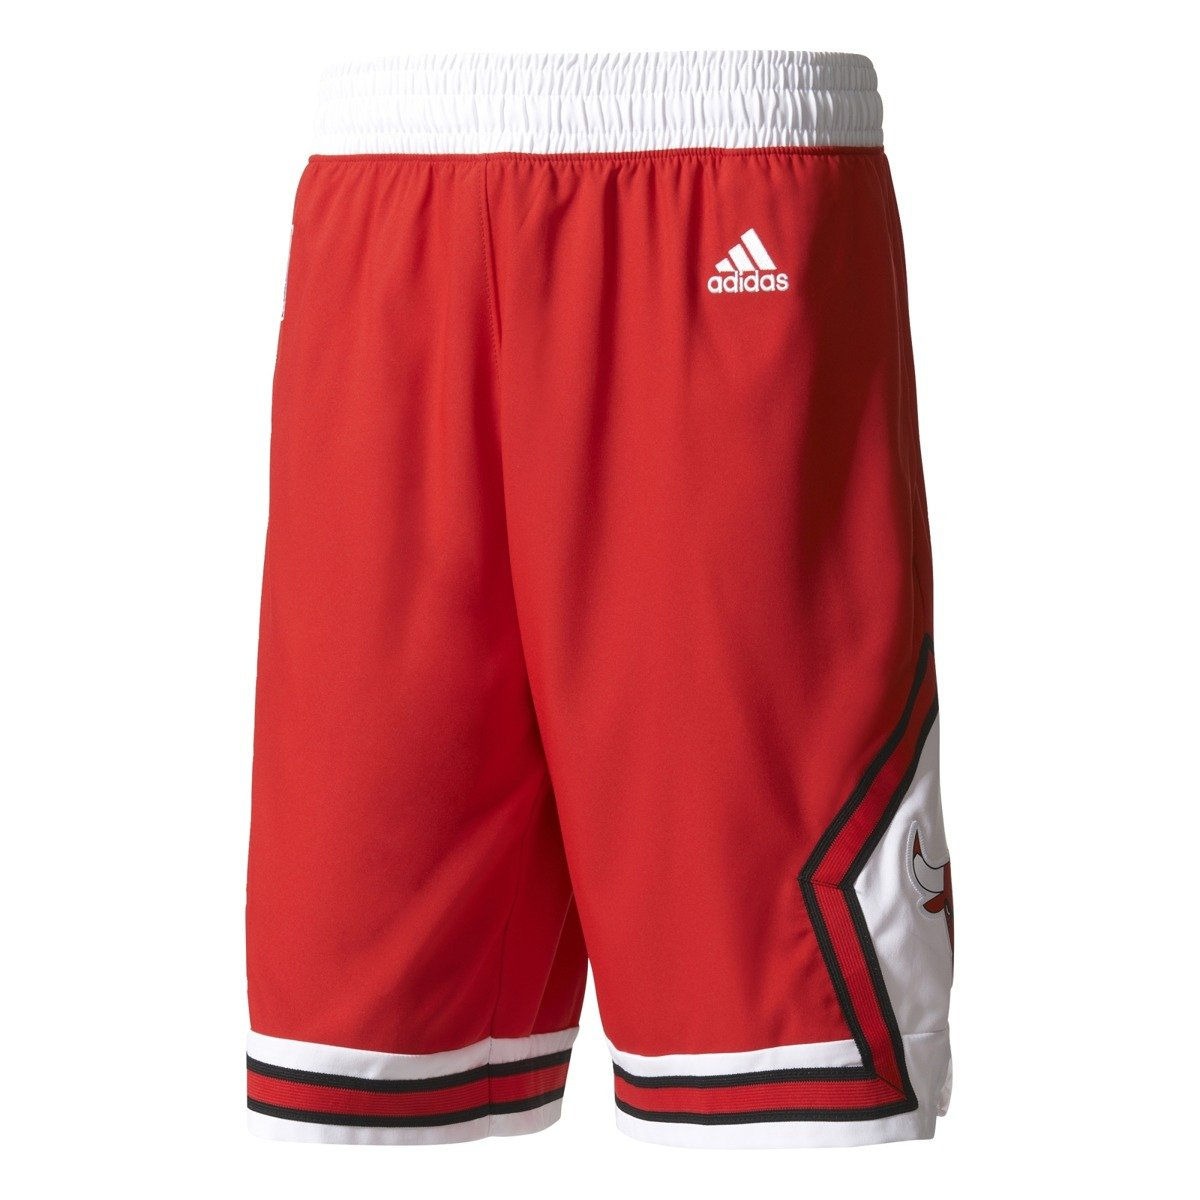 Adidas NBA Chicago Bulls Swingman Basketball Shorts - A20637 ... f953cac4144